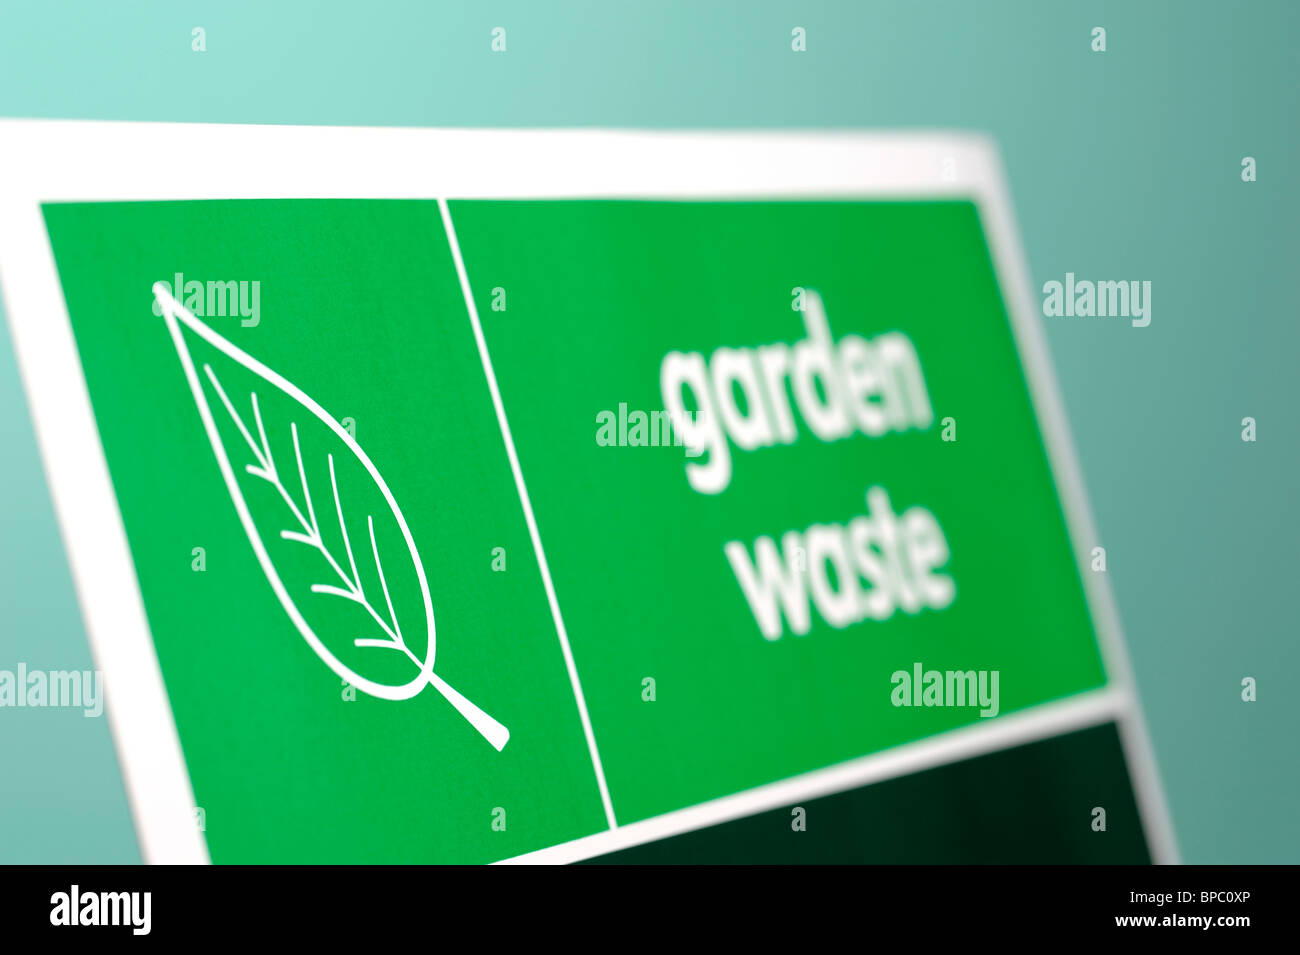 Green Garden Waste sign - Stock Image